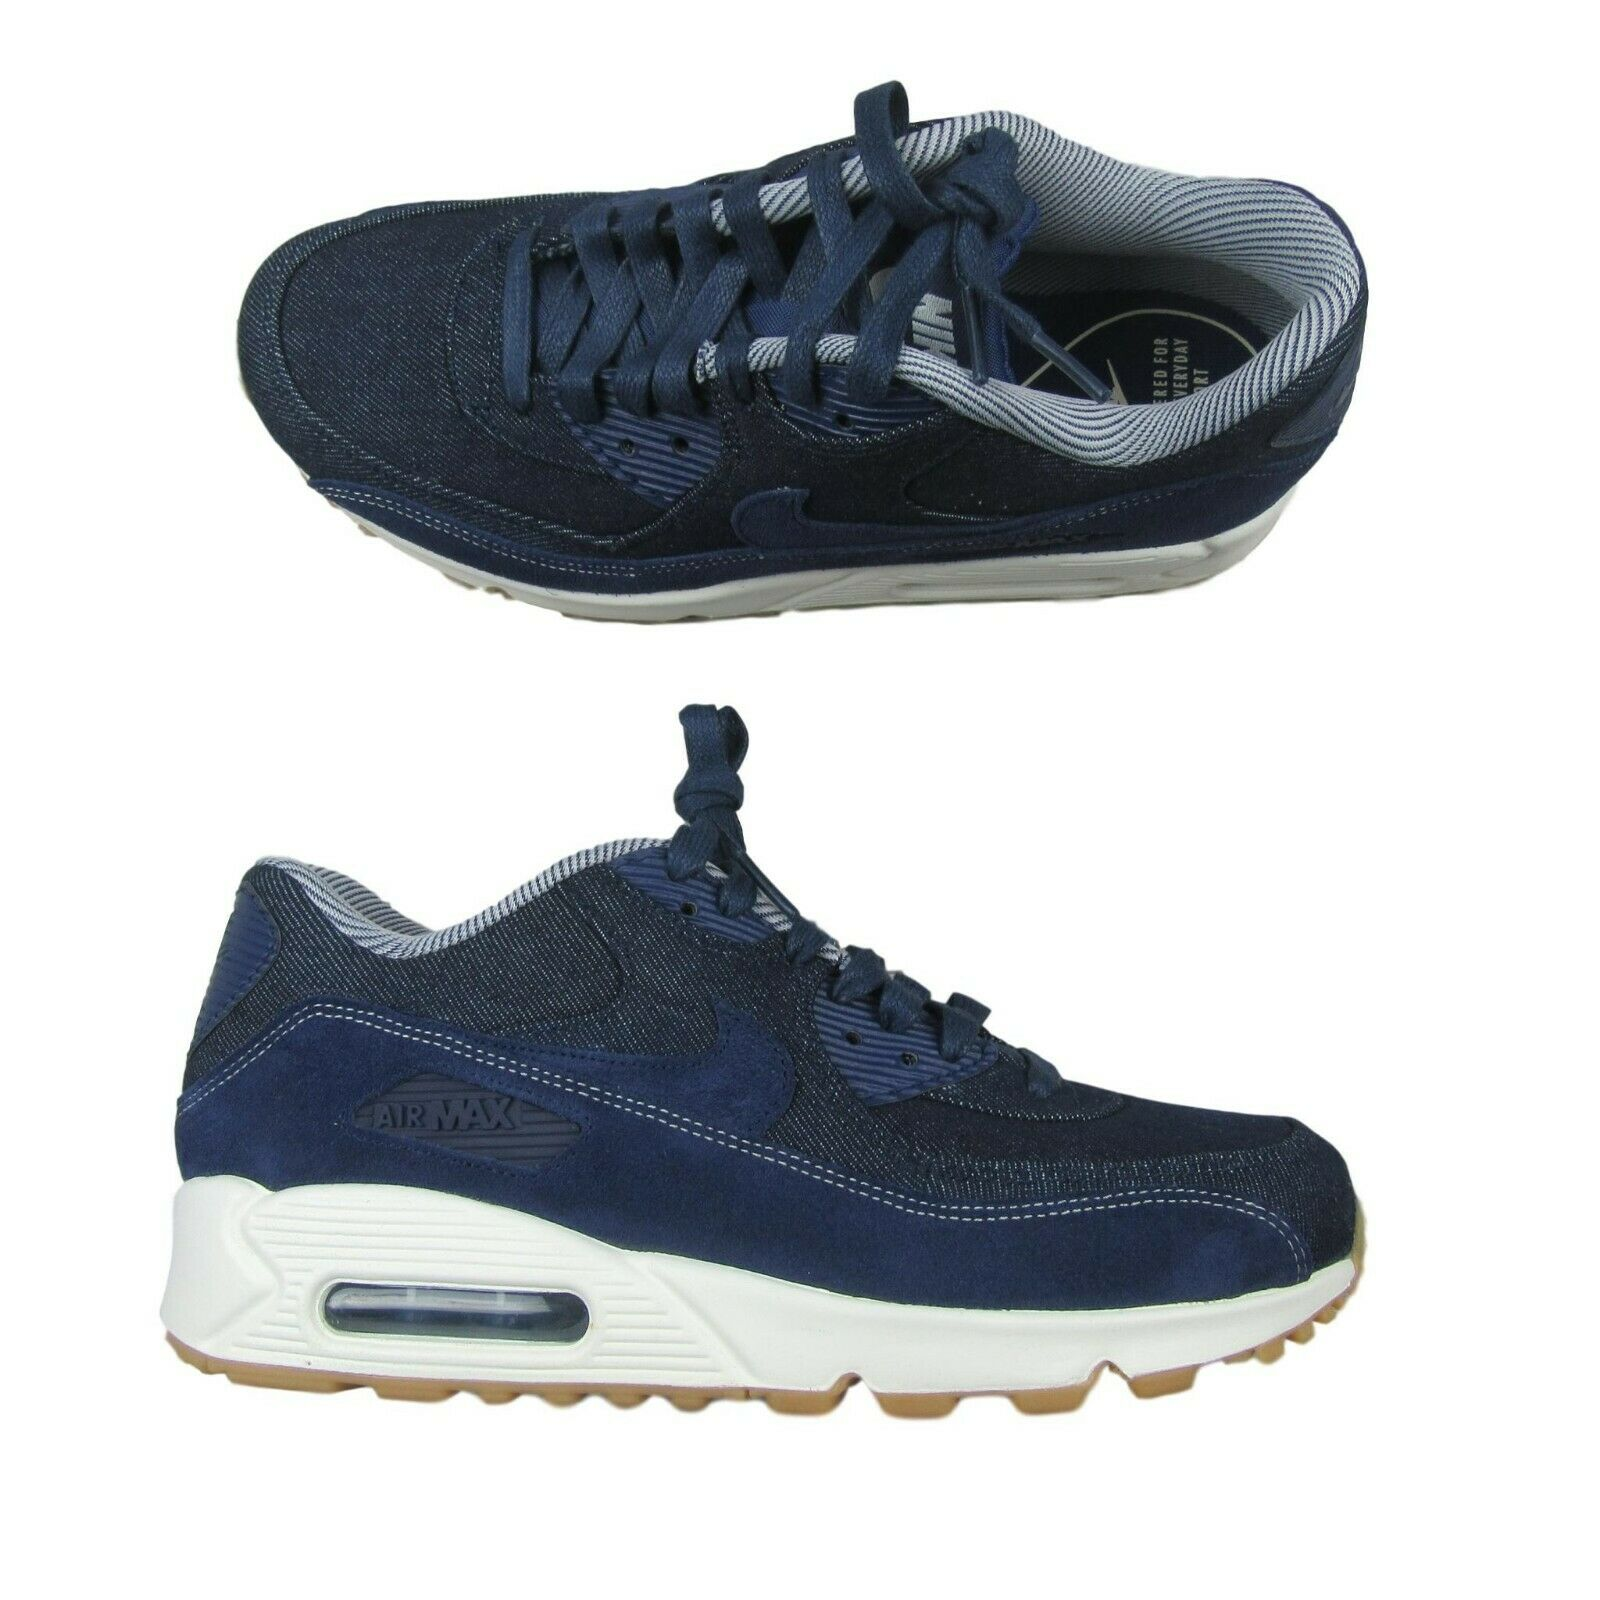 e0c311a00d Nike Air Max 90 SE Blue Denim Pack Running Shoes Size 8 Womens ...